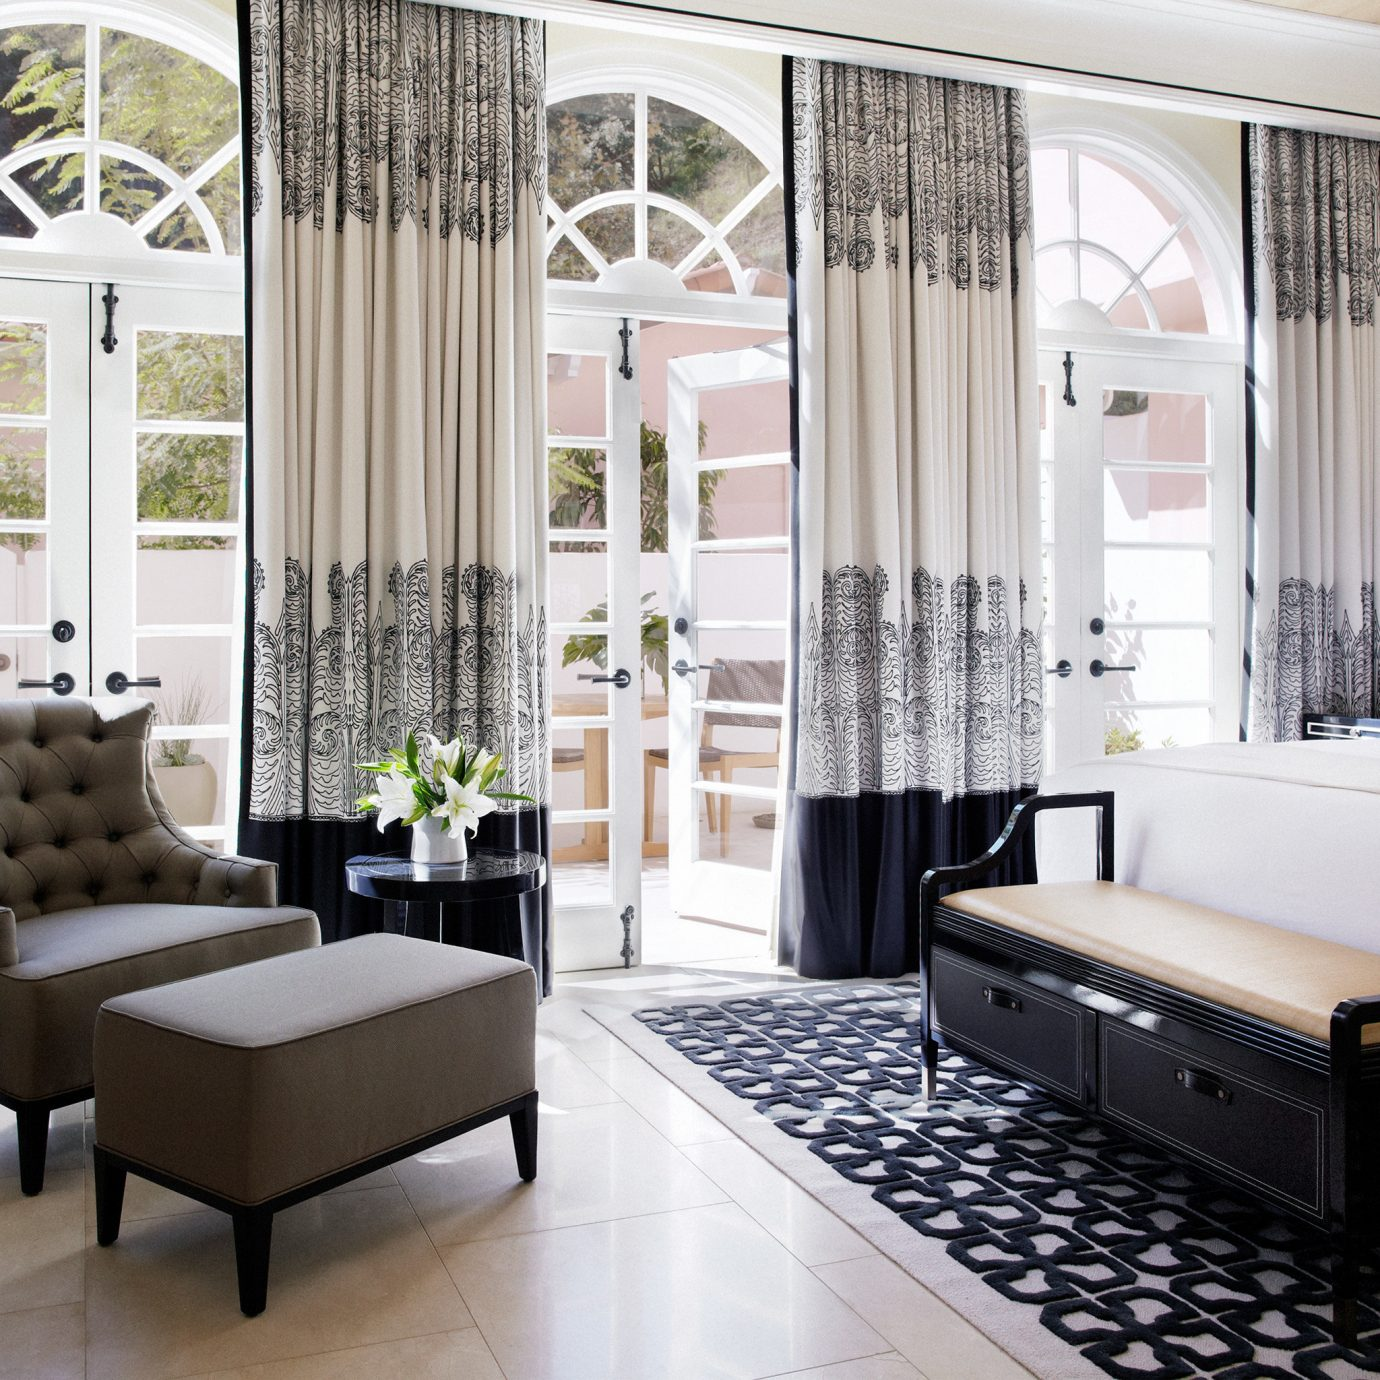 Bedroom Hotels Luxury Modern property living room home Suite condominium curtain